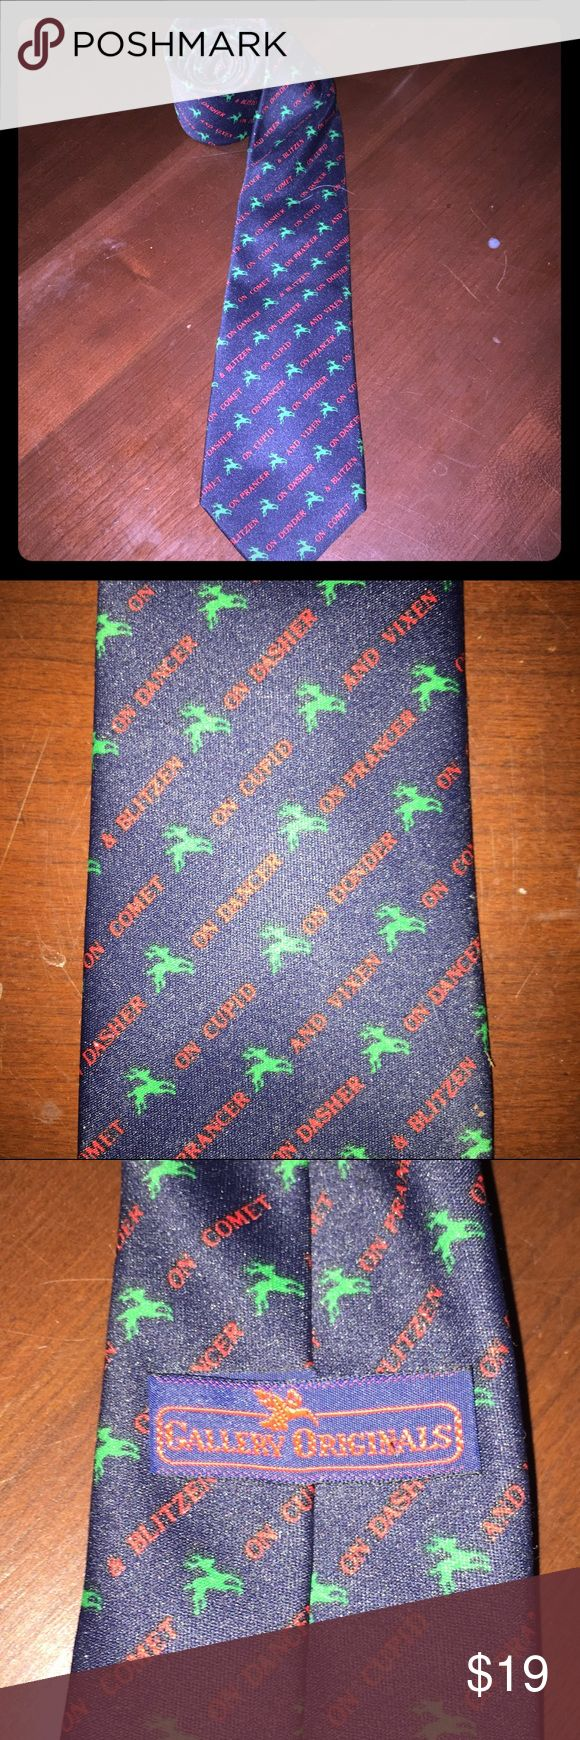 Christmas reindeer tie Blue tie with vibrant green reindeer & red writing. Has great pattern Dasher, Dancer, Prancer, Vixen, Comet, Cupid, Dunder (Donder and Donner), and Blixem (Blixen and Blitzen), & Rudolph great used condition holiday tie xmas tie Christmas tie Accessories Ties